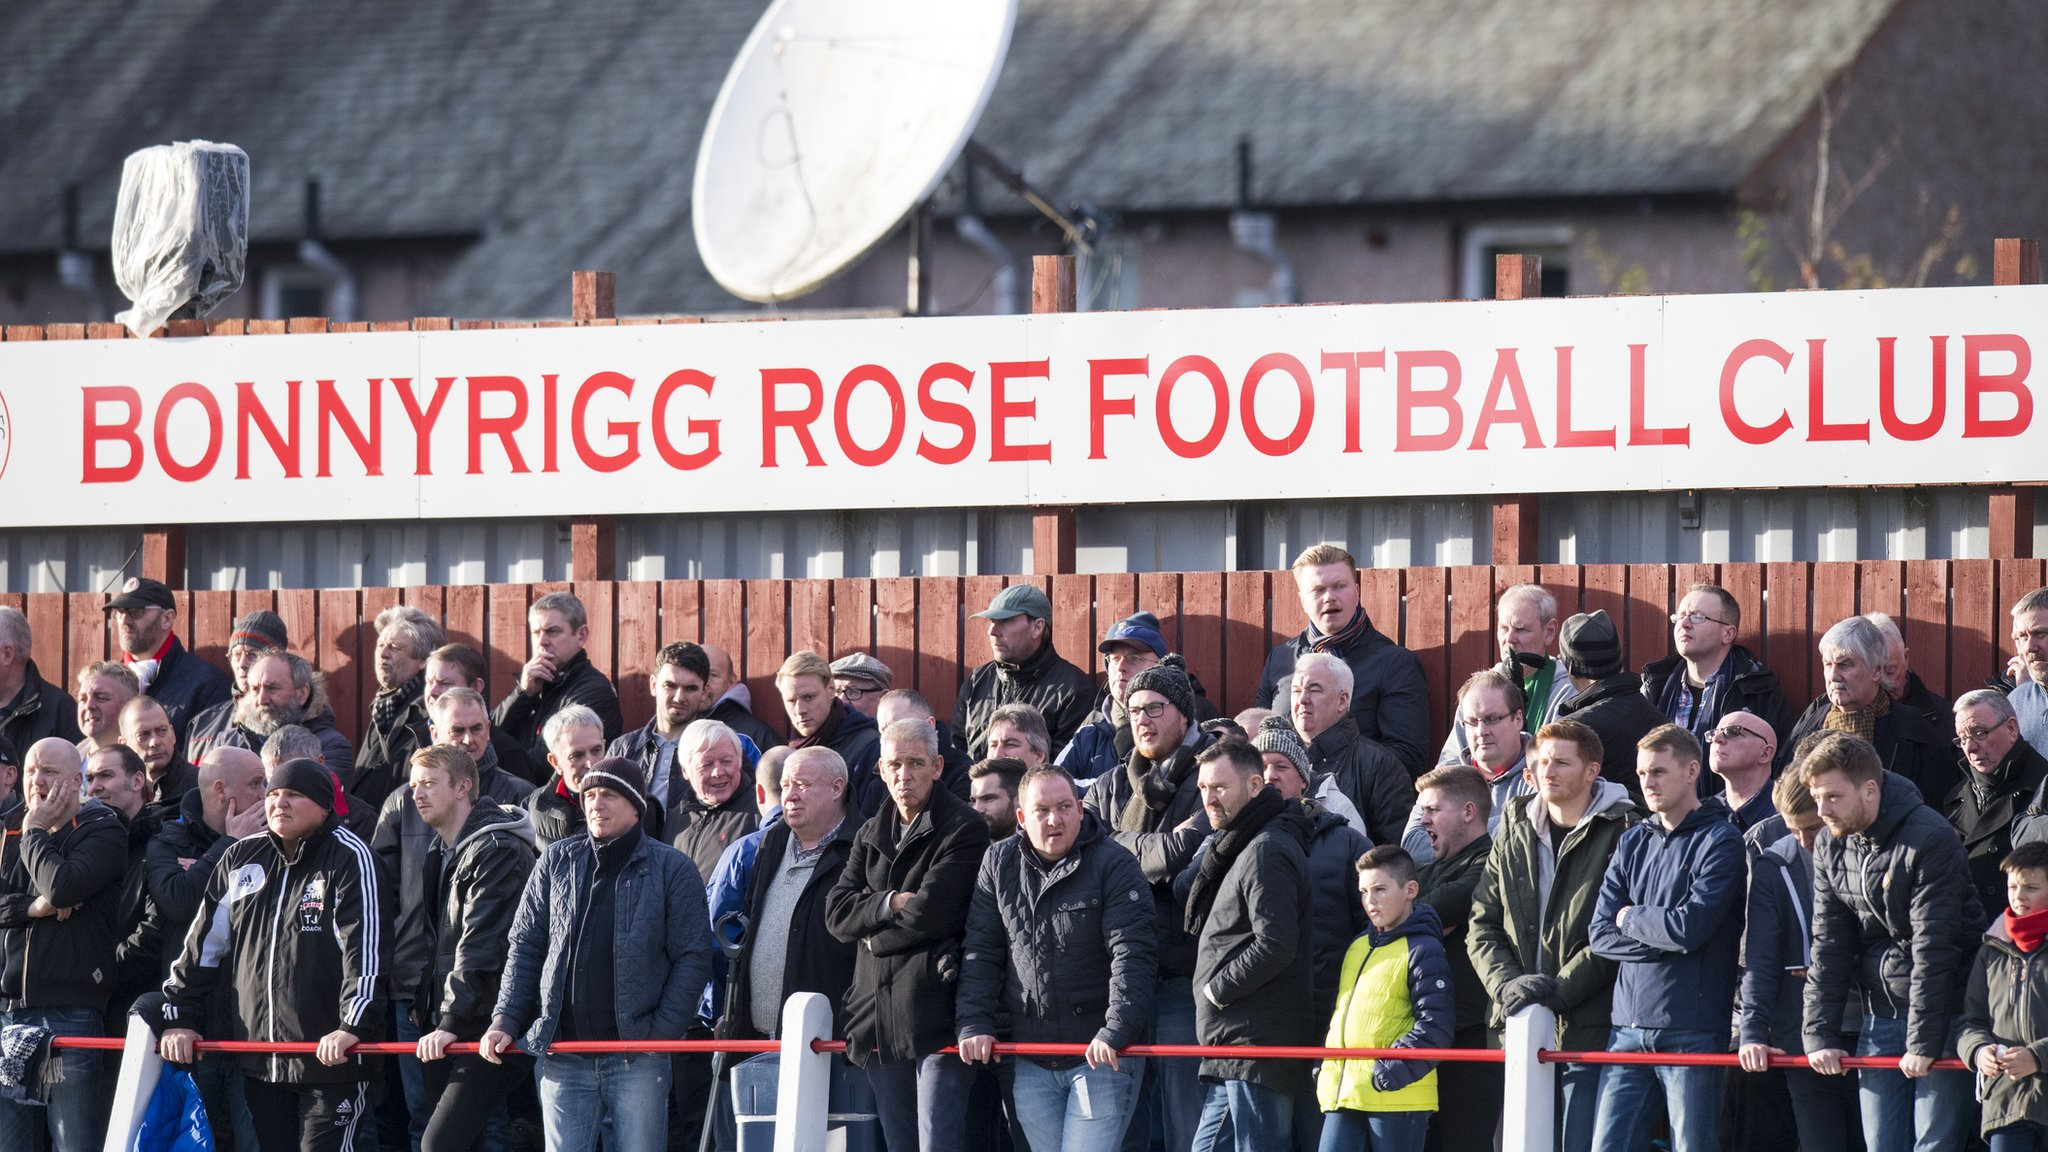 Bonnyrigg Rose want Hibs tie to be at 'holy ground' Tynecastle